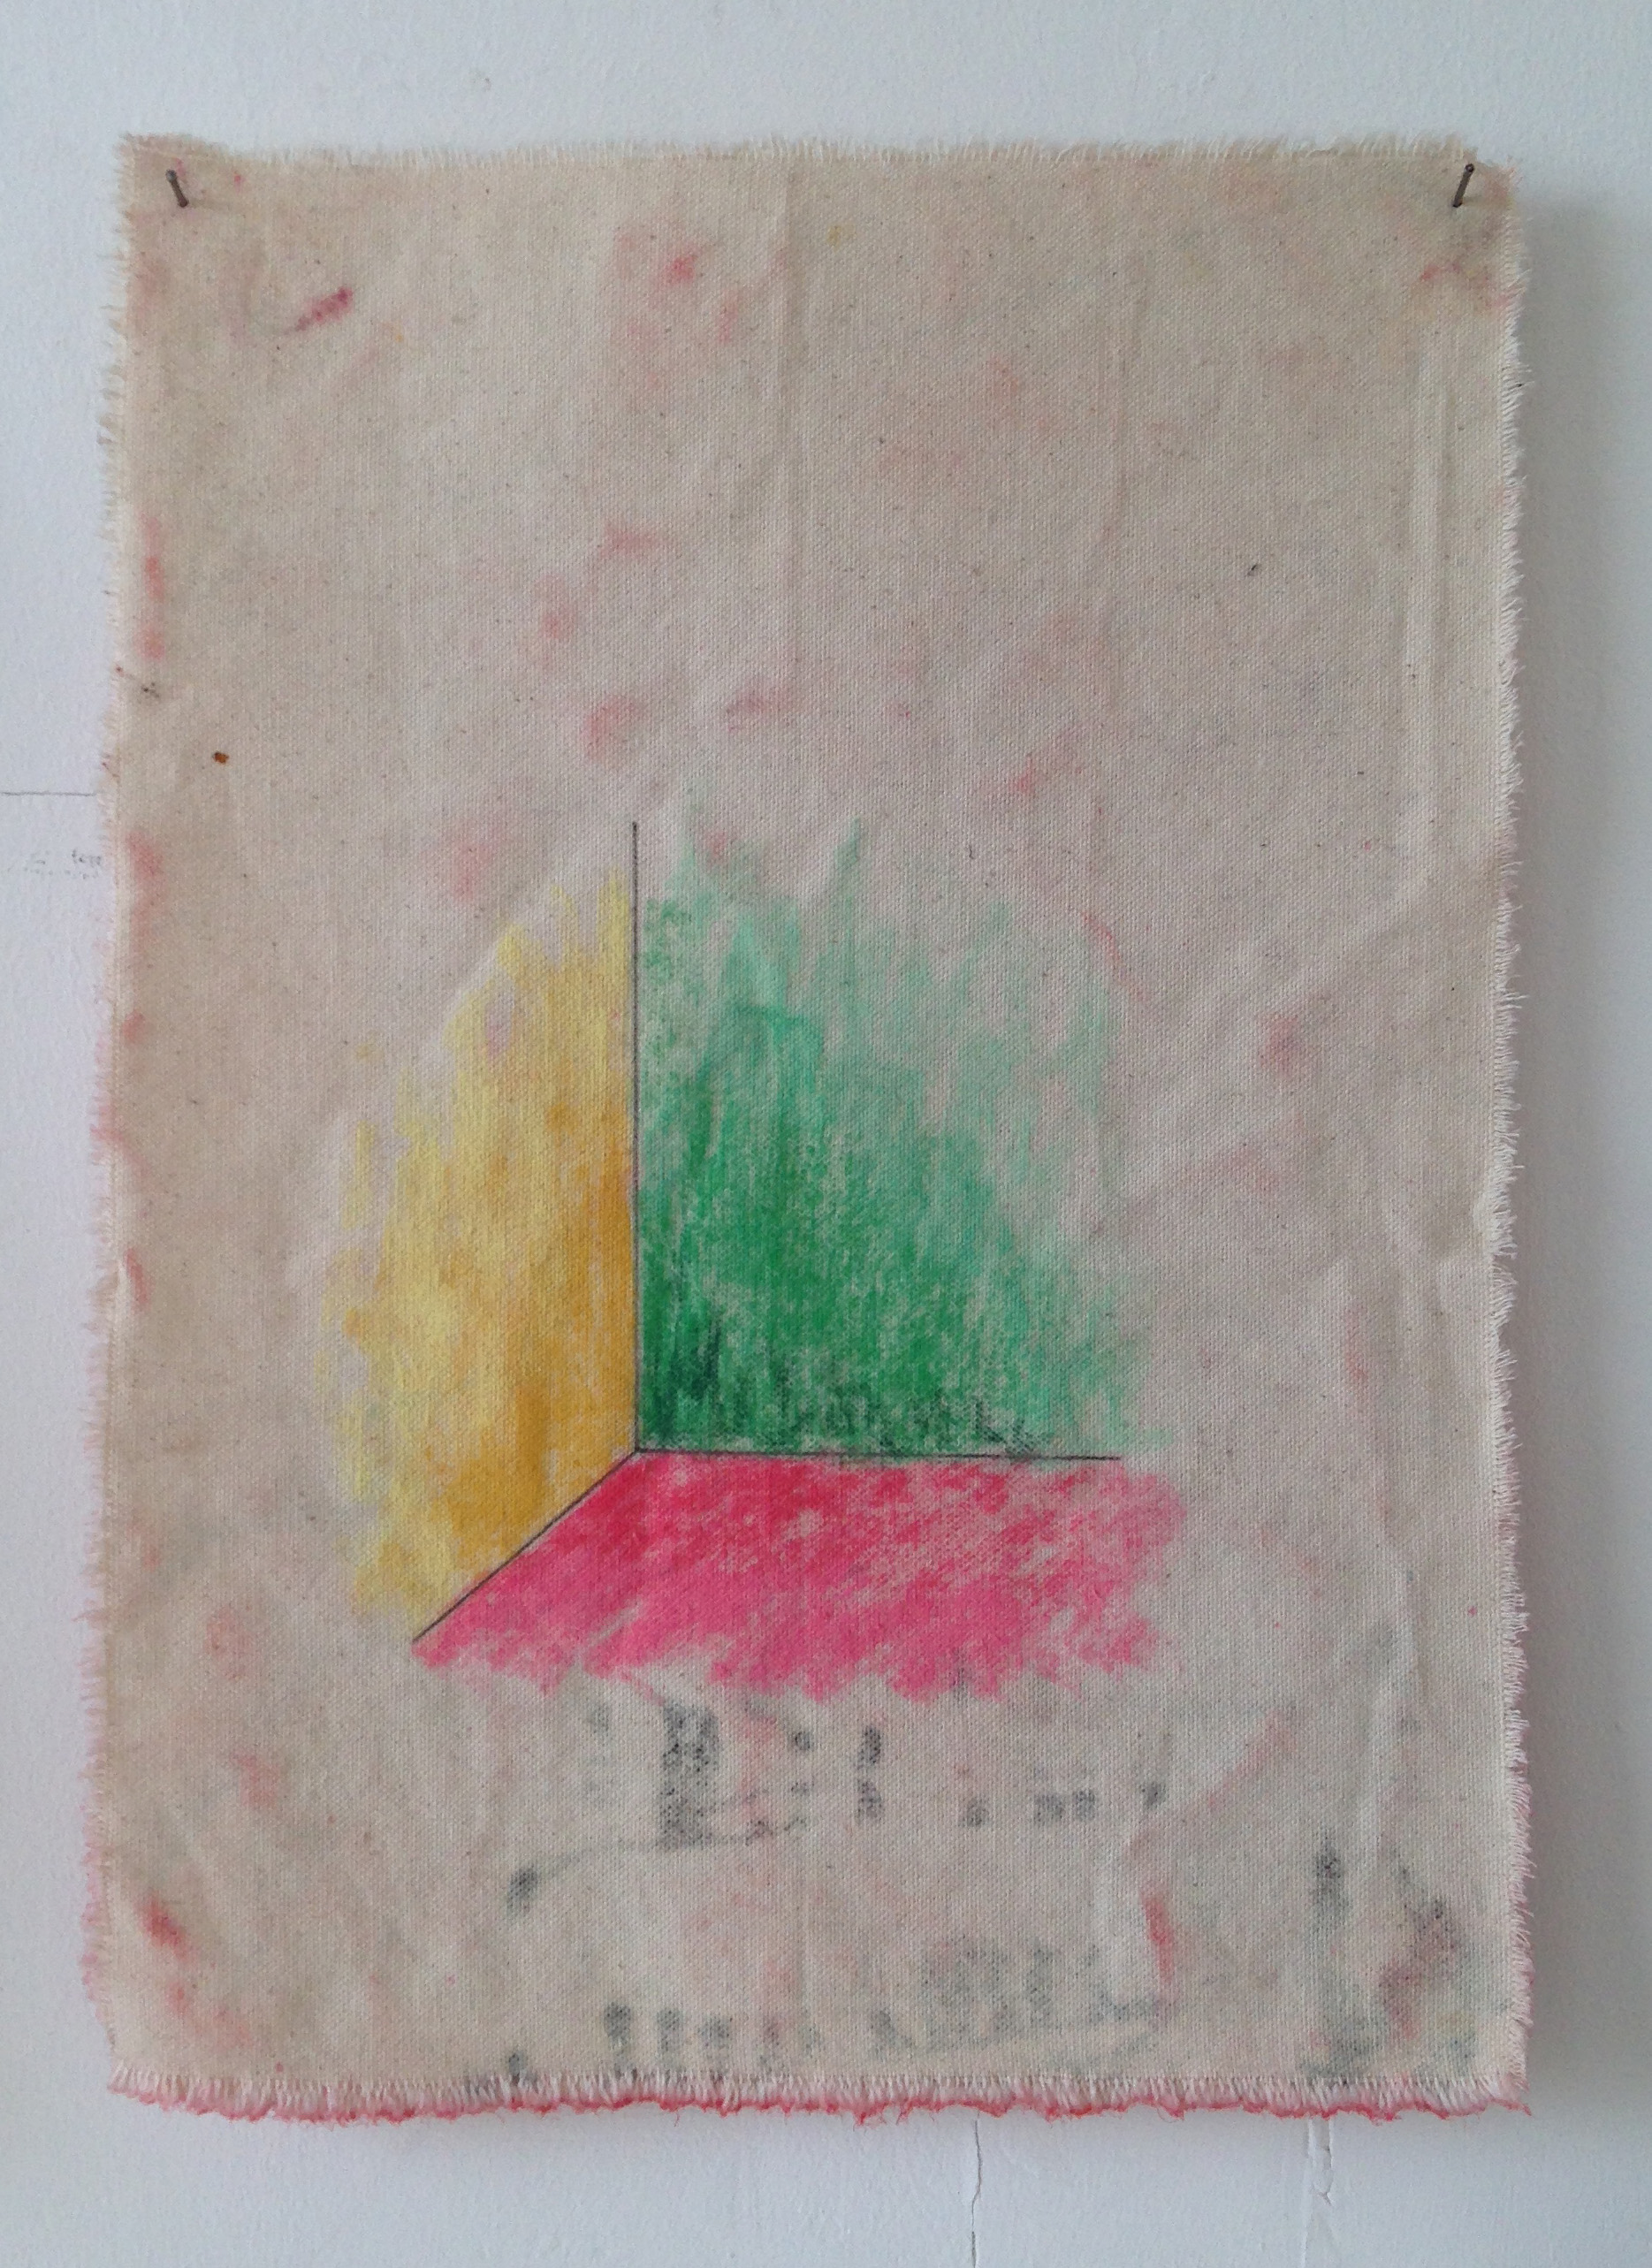 A Conversation Once Had In a Study Down a Corridor, 2015, Pencil, pastel and canvas,40 x 28.5 cm